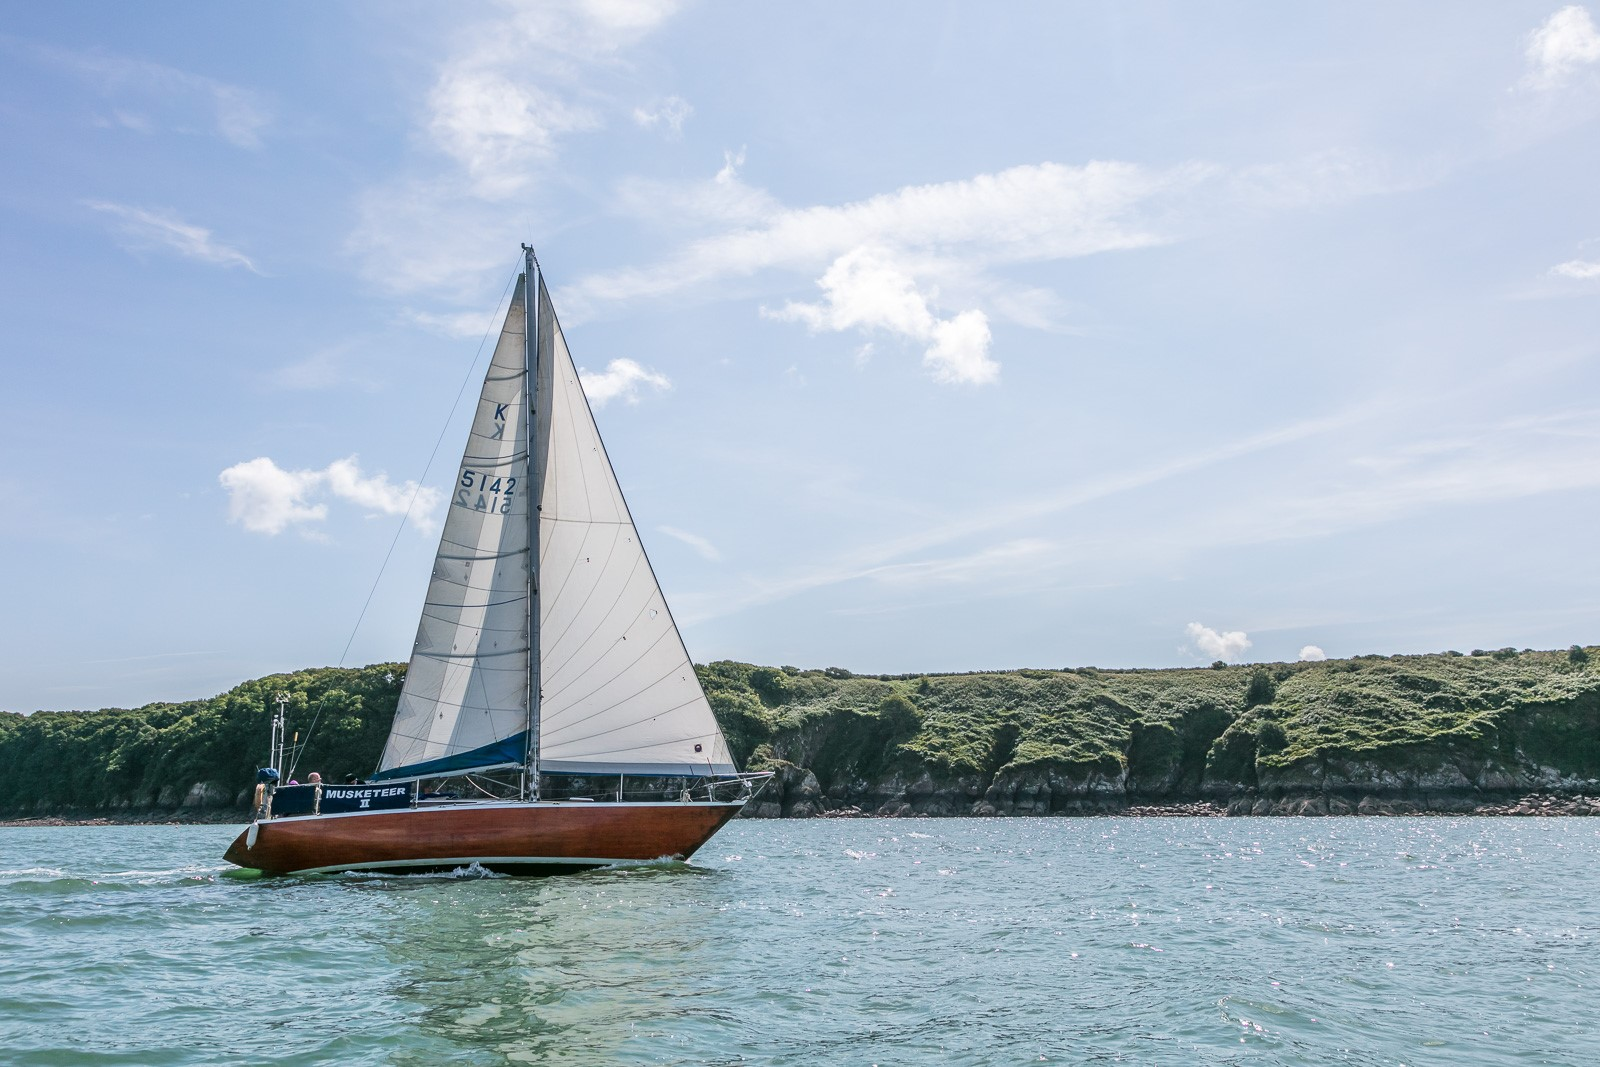 Sailing on the Milford Haven Waterway